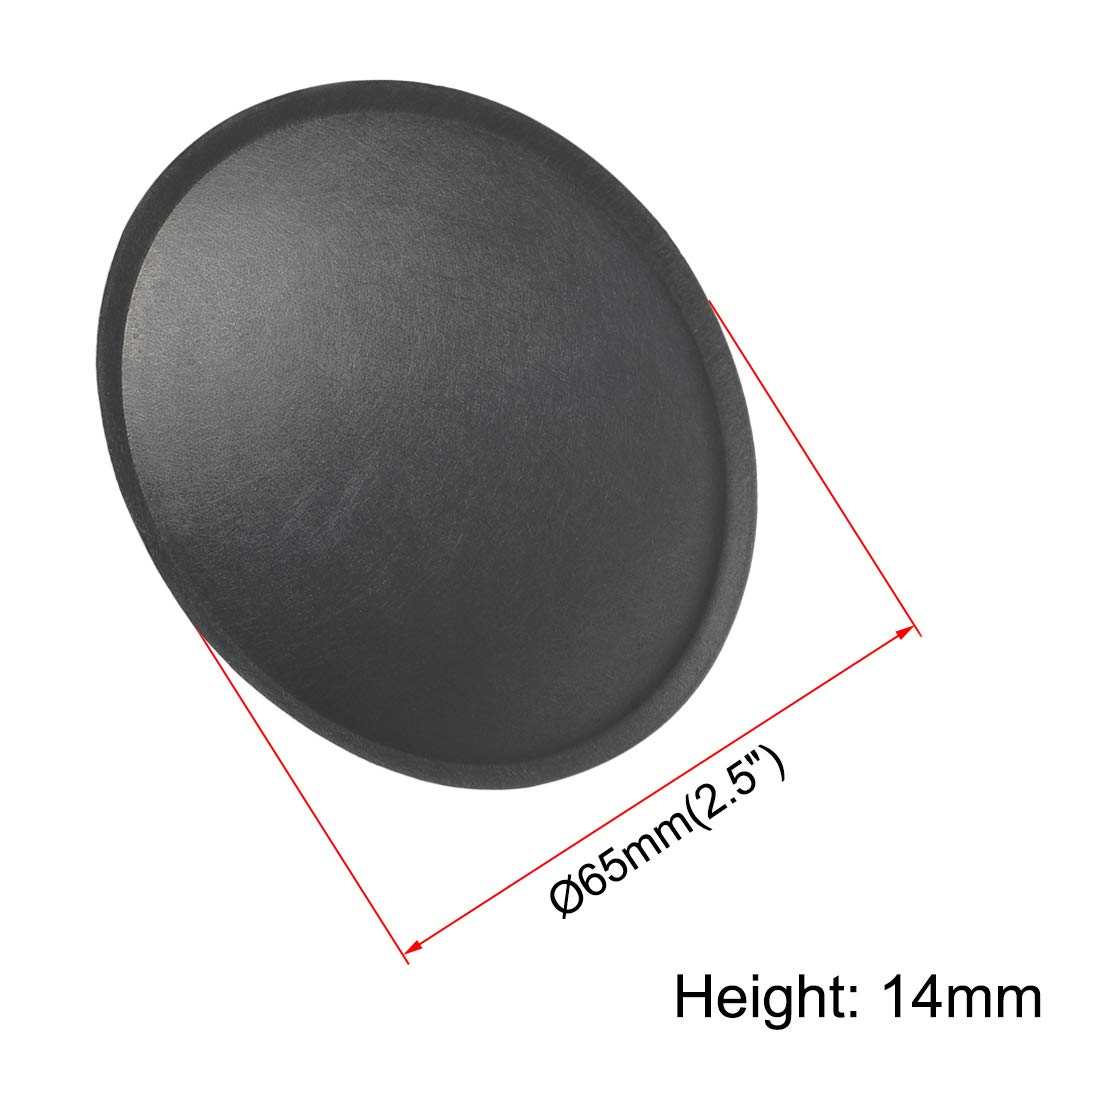 uxcell Speaker Dust Cap 65mm//2.5 inches Diameter Subwoofer Paper Dome Coil Cover Caps